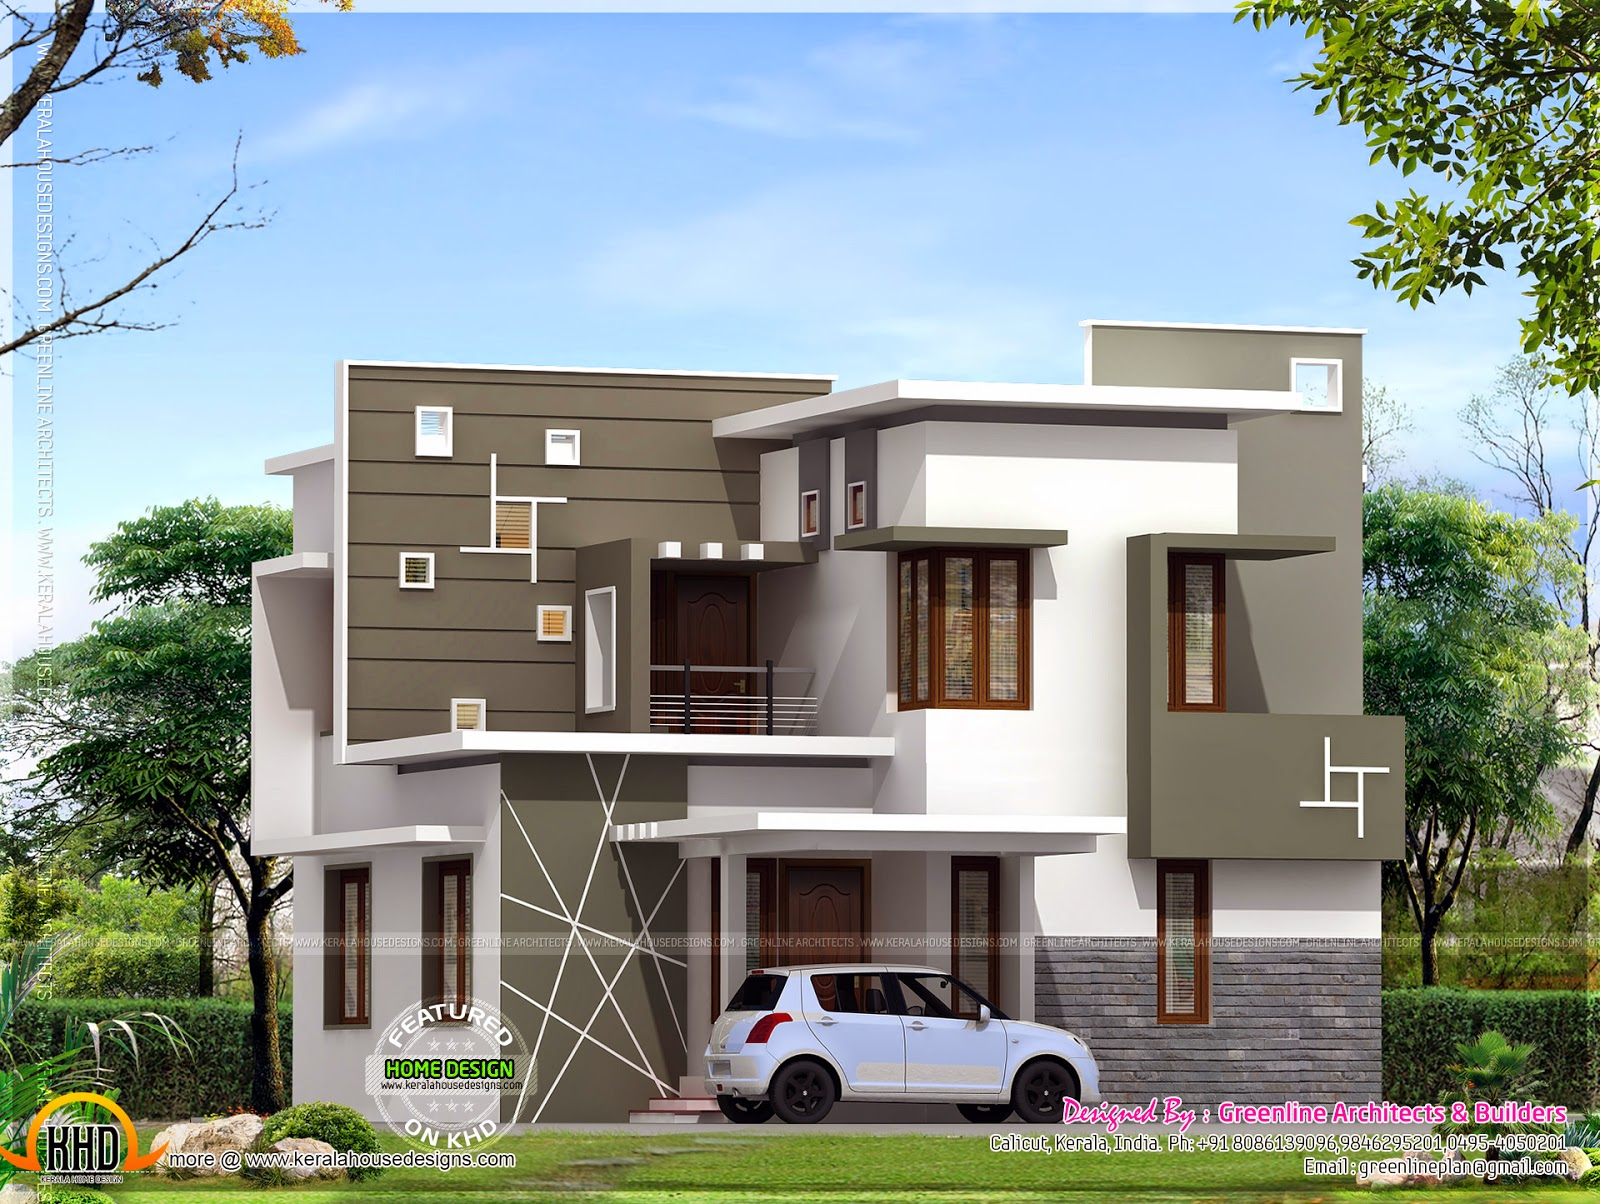 Budget modern house kerala home design and floor plans for Homes on a budget